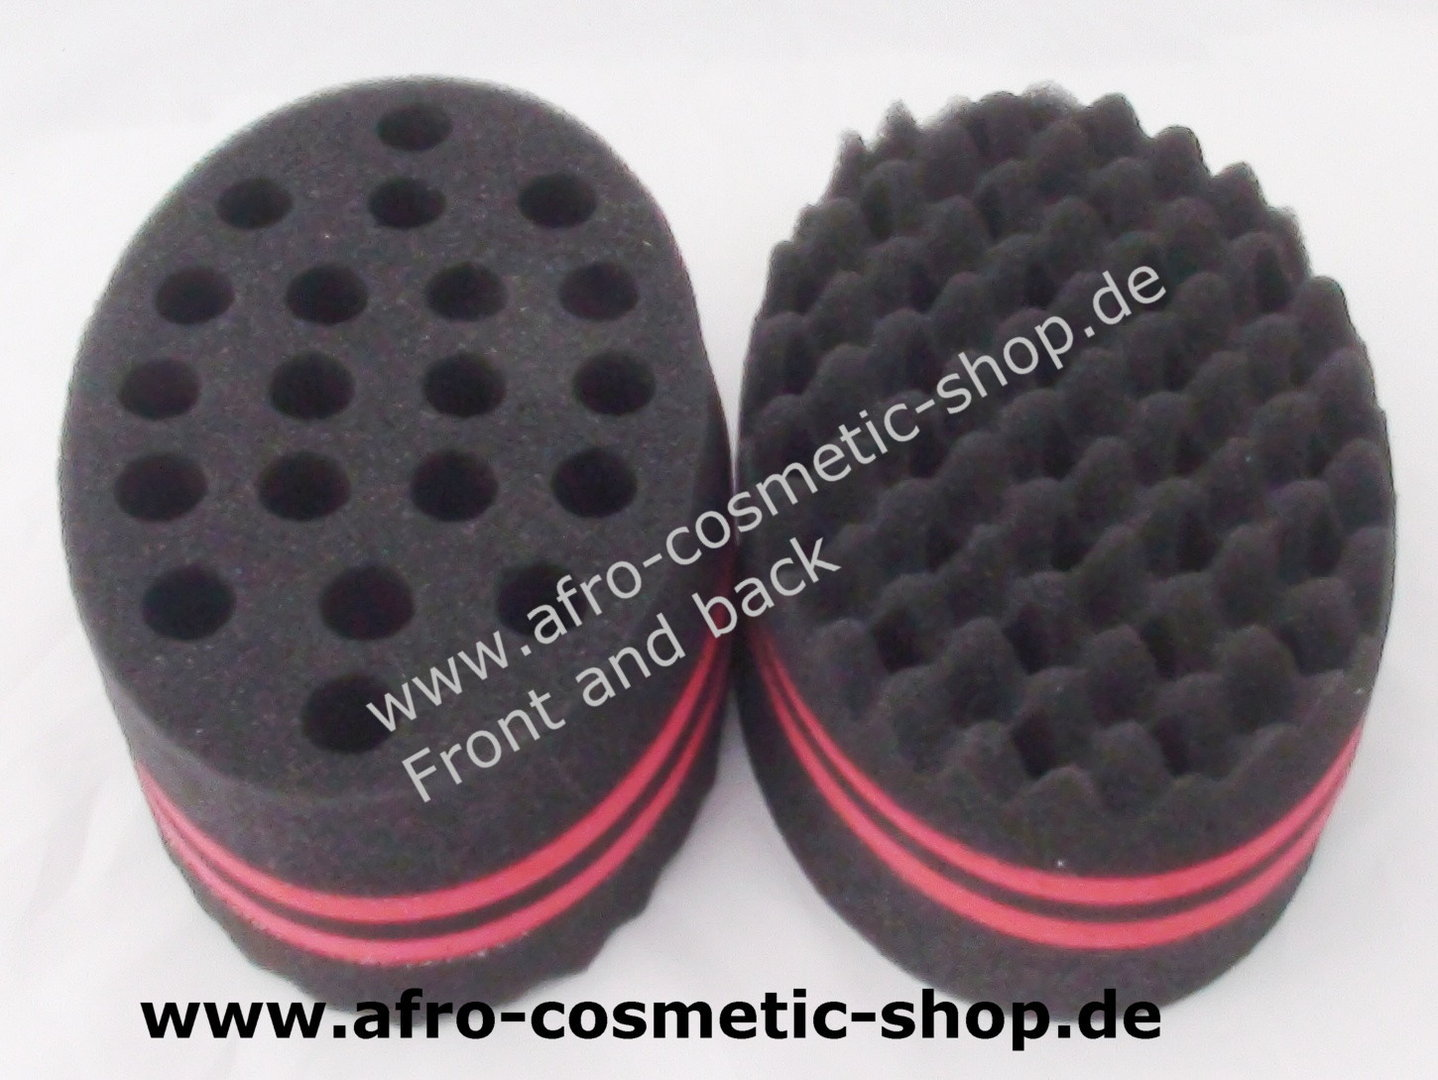 Twists Schwamm 2in1 Afro Cosmetic Shop